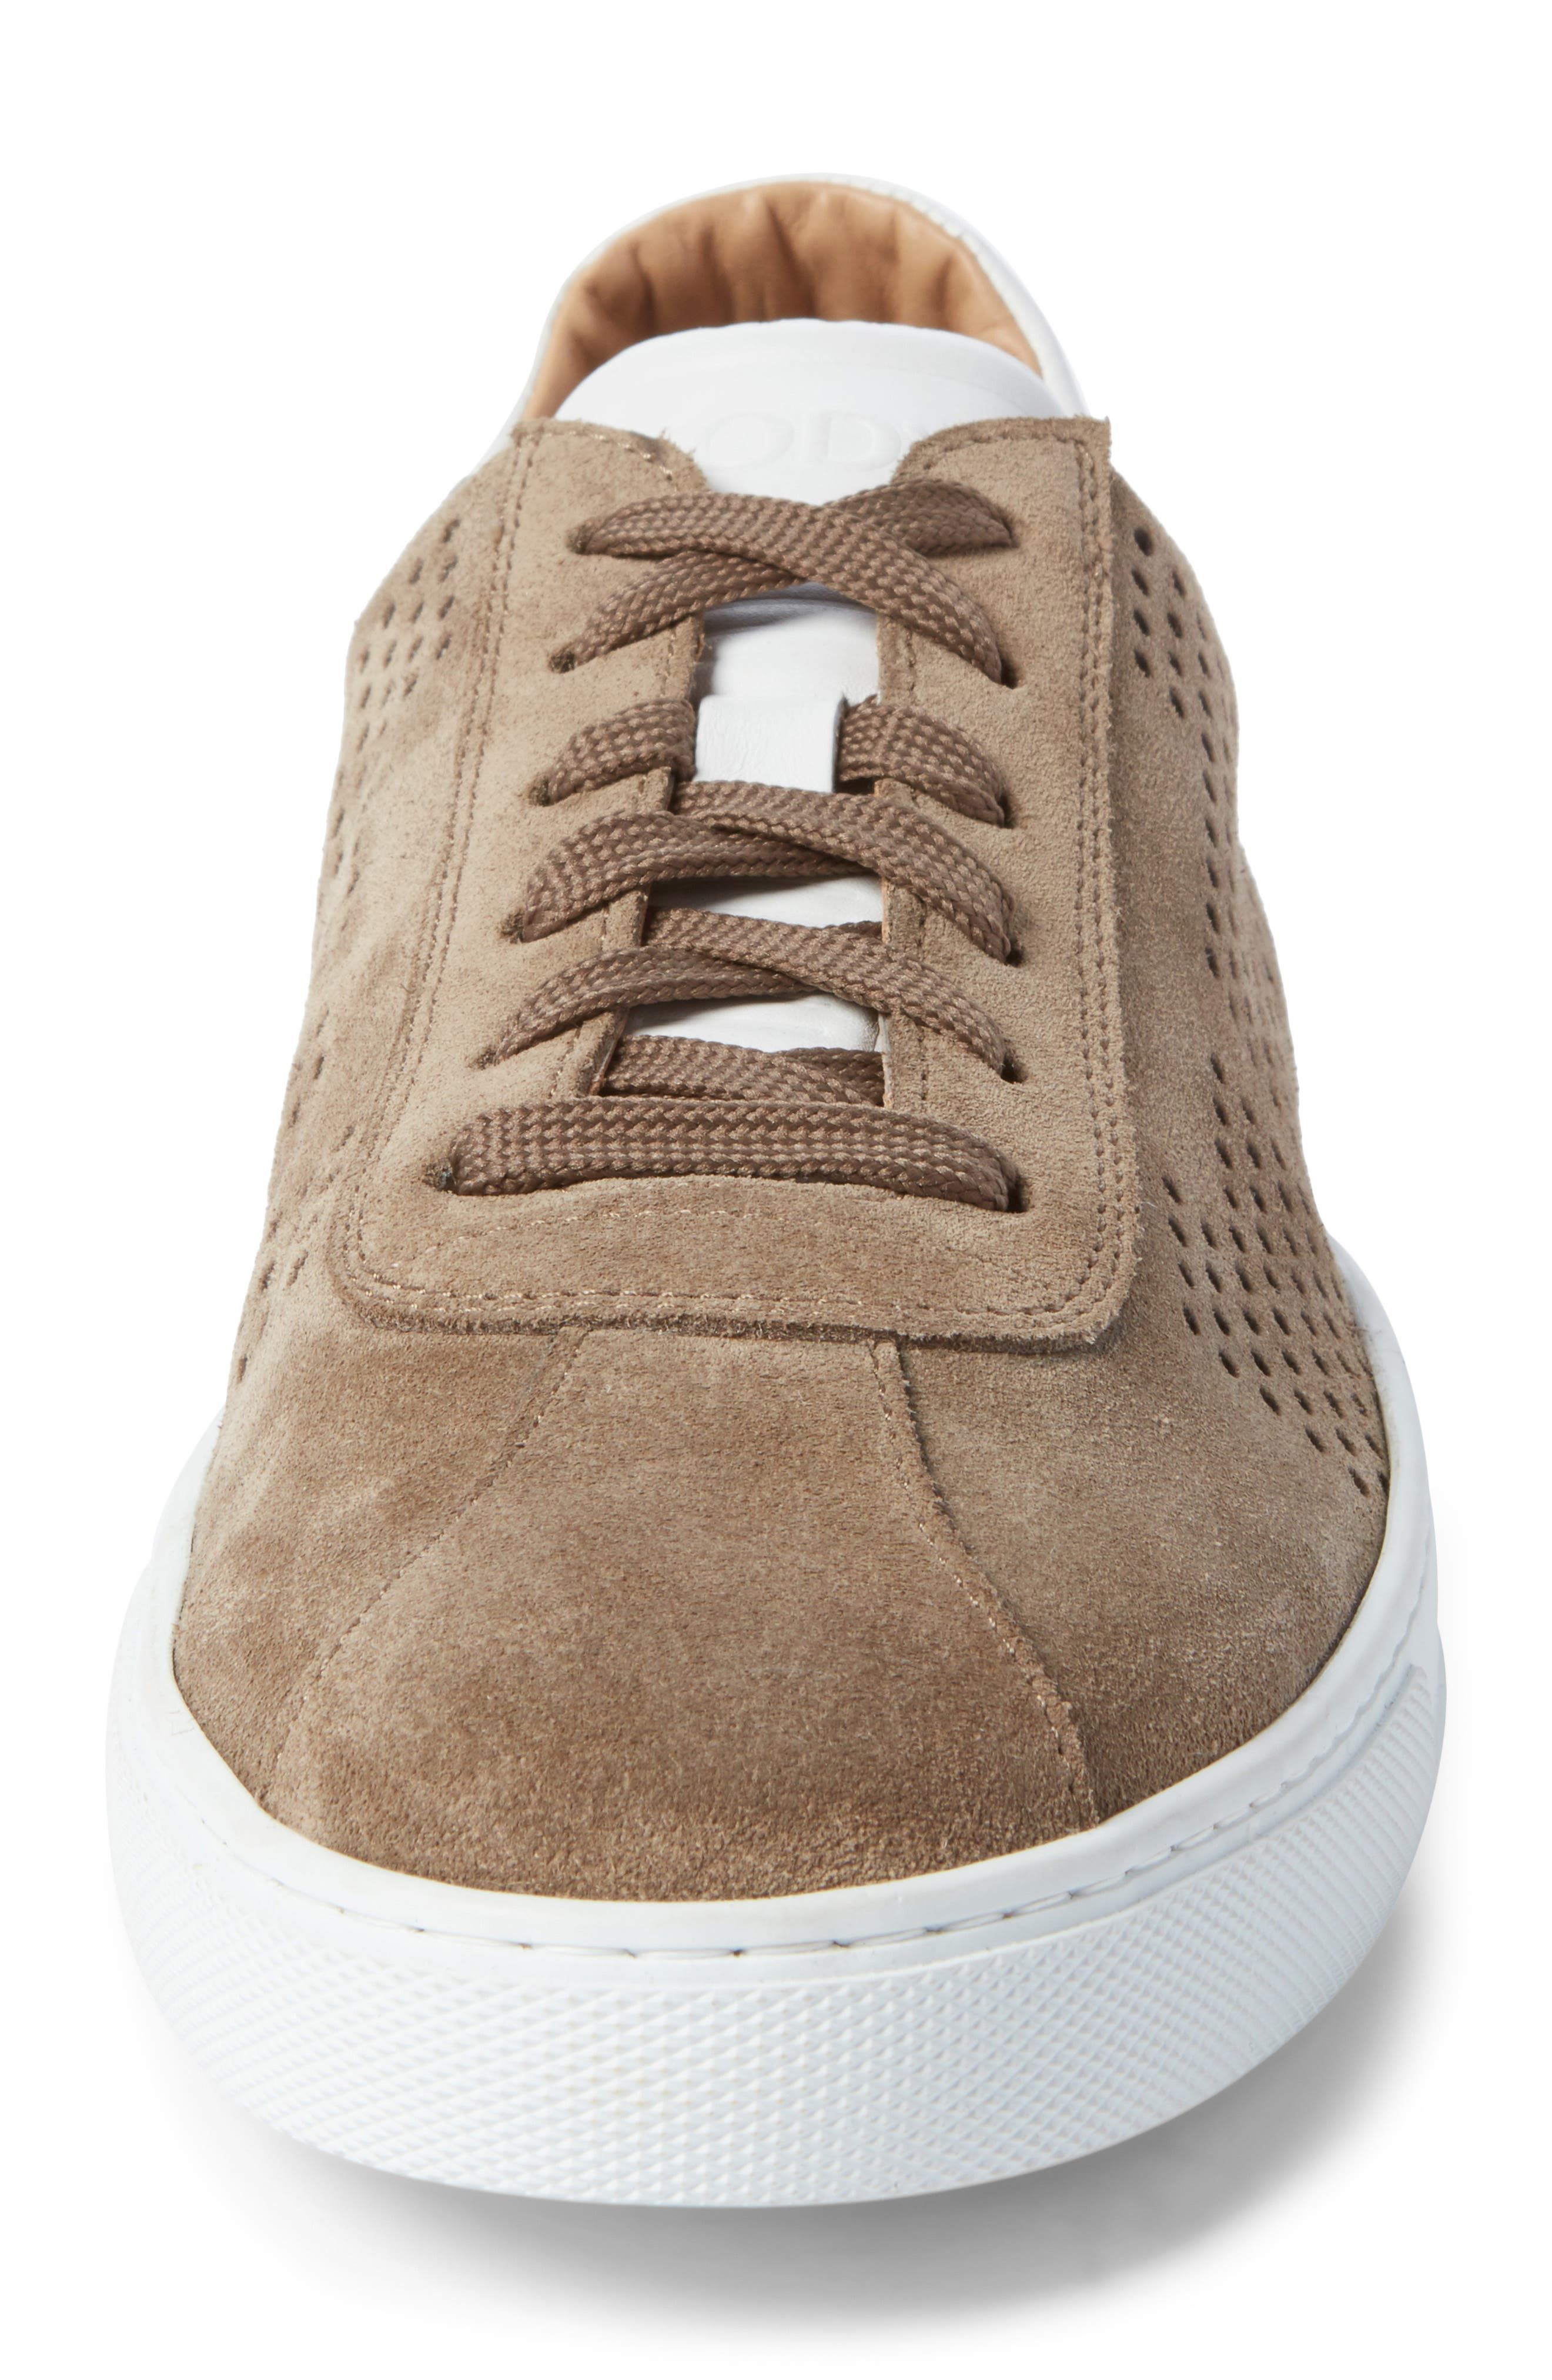 Cassetta Sneaker,                             Alternate thumbnail 4, color,                             237